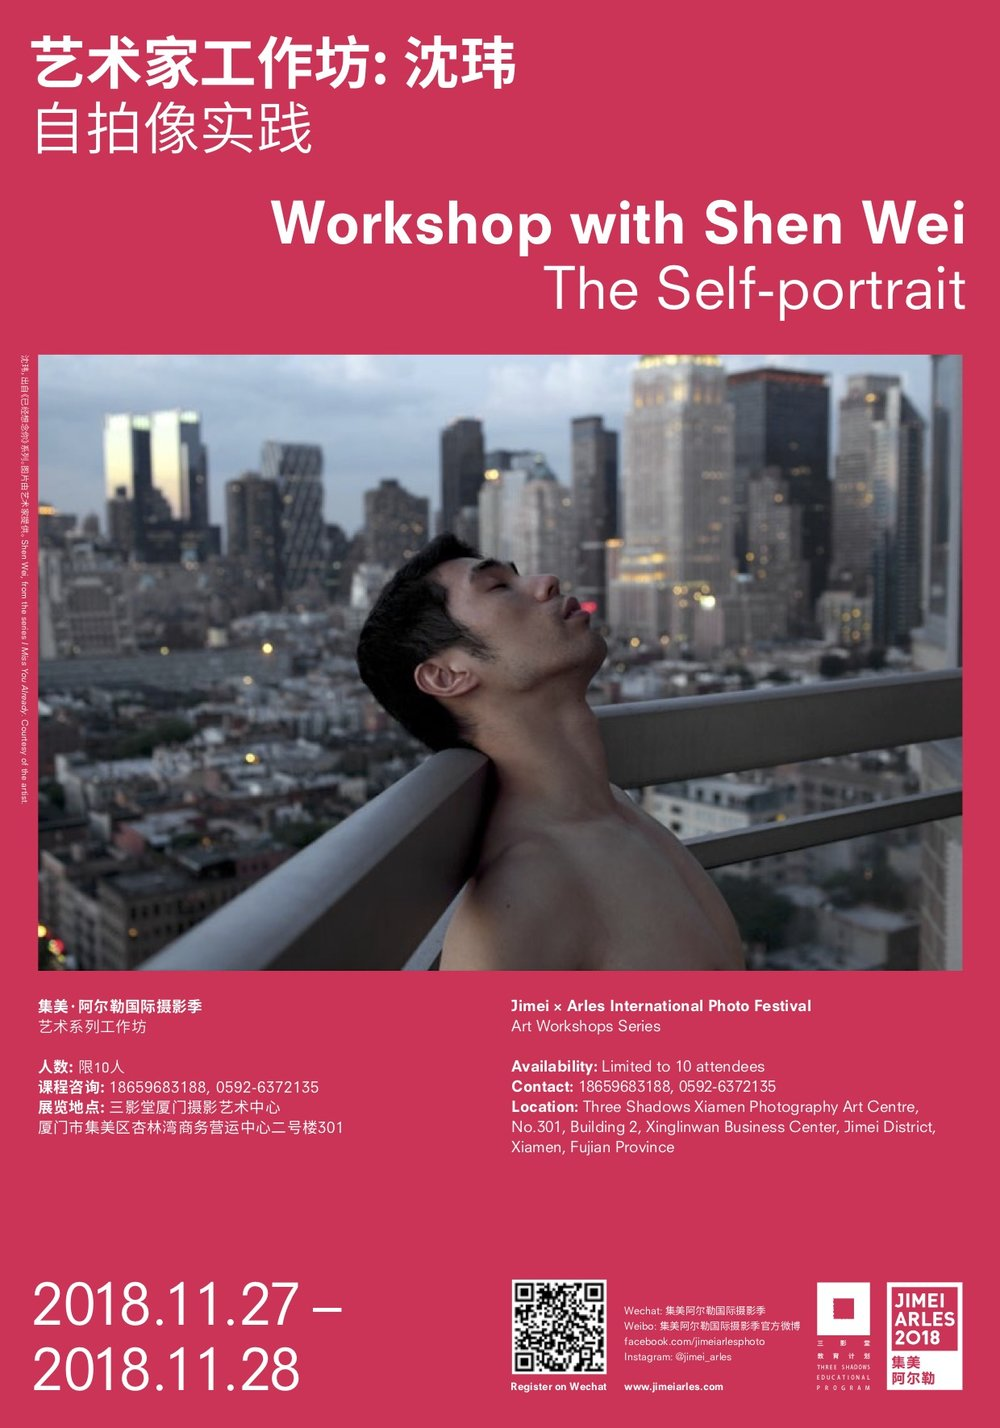 JIMEIARLES_Workshop Poster_Digital_Shen_Wei.jpg